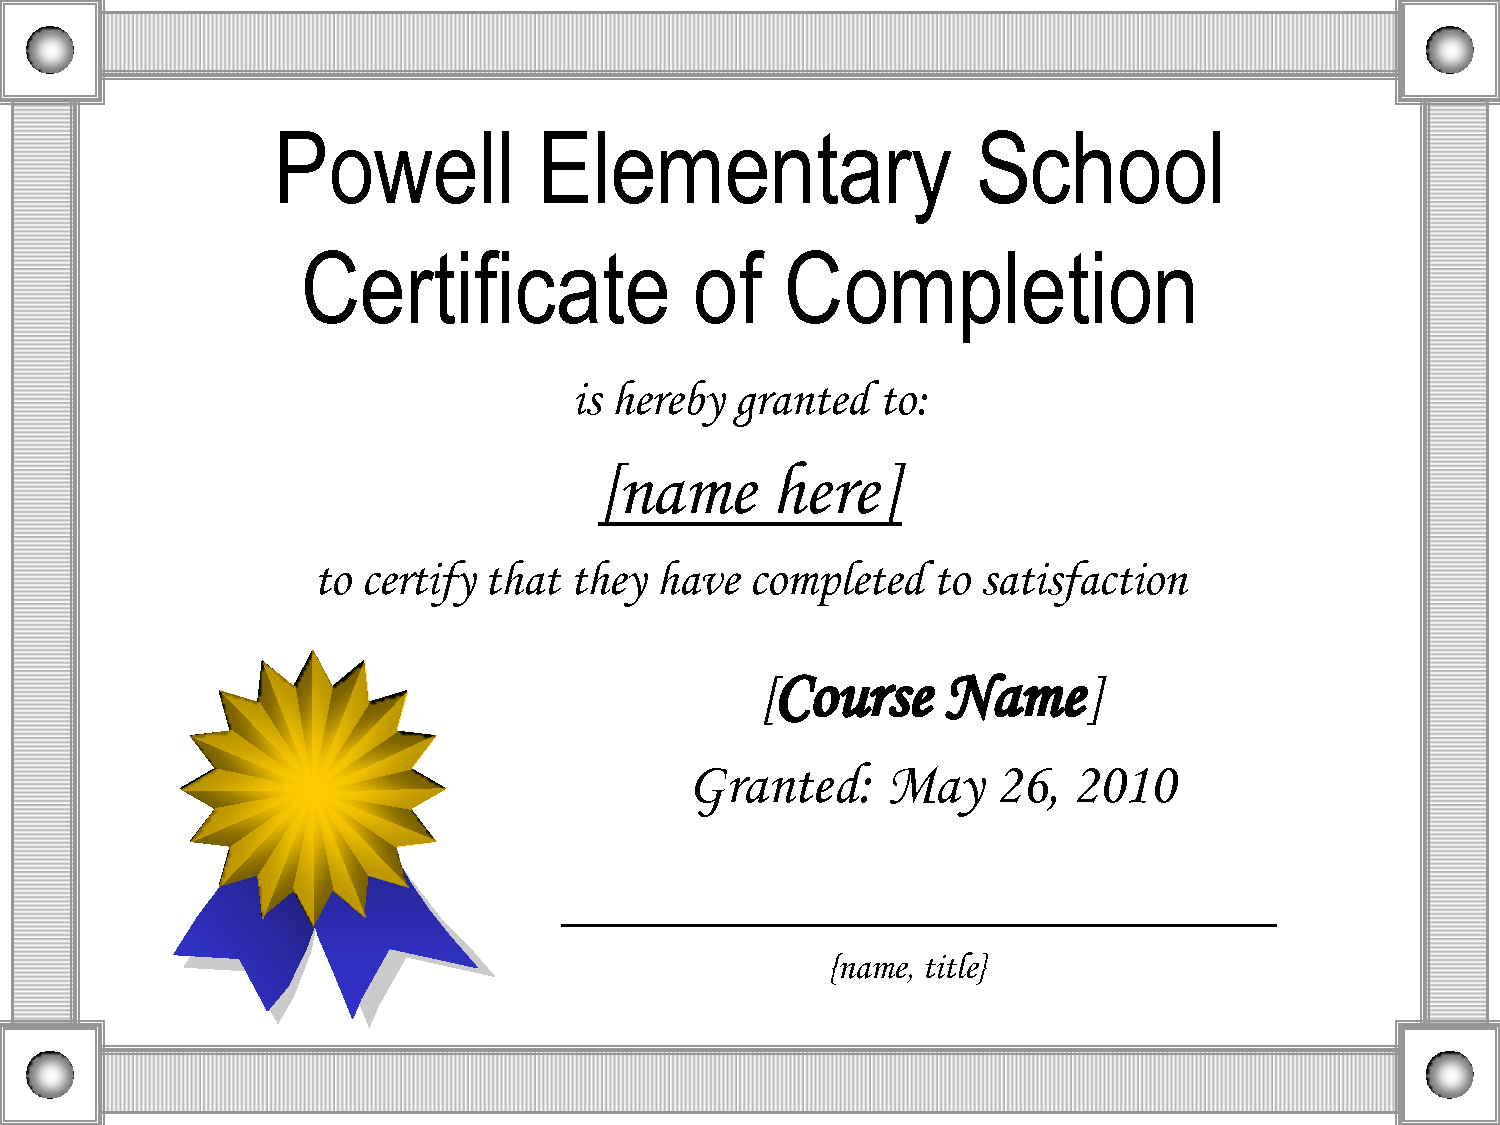 Middle school certificates templates powell elementary middle school certificates templates powell elementary schoolcertificate of completion is hereby granted to yadclub Choice Image